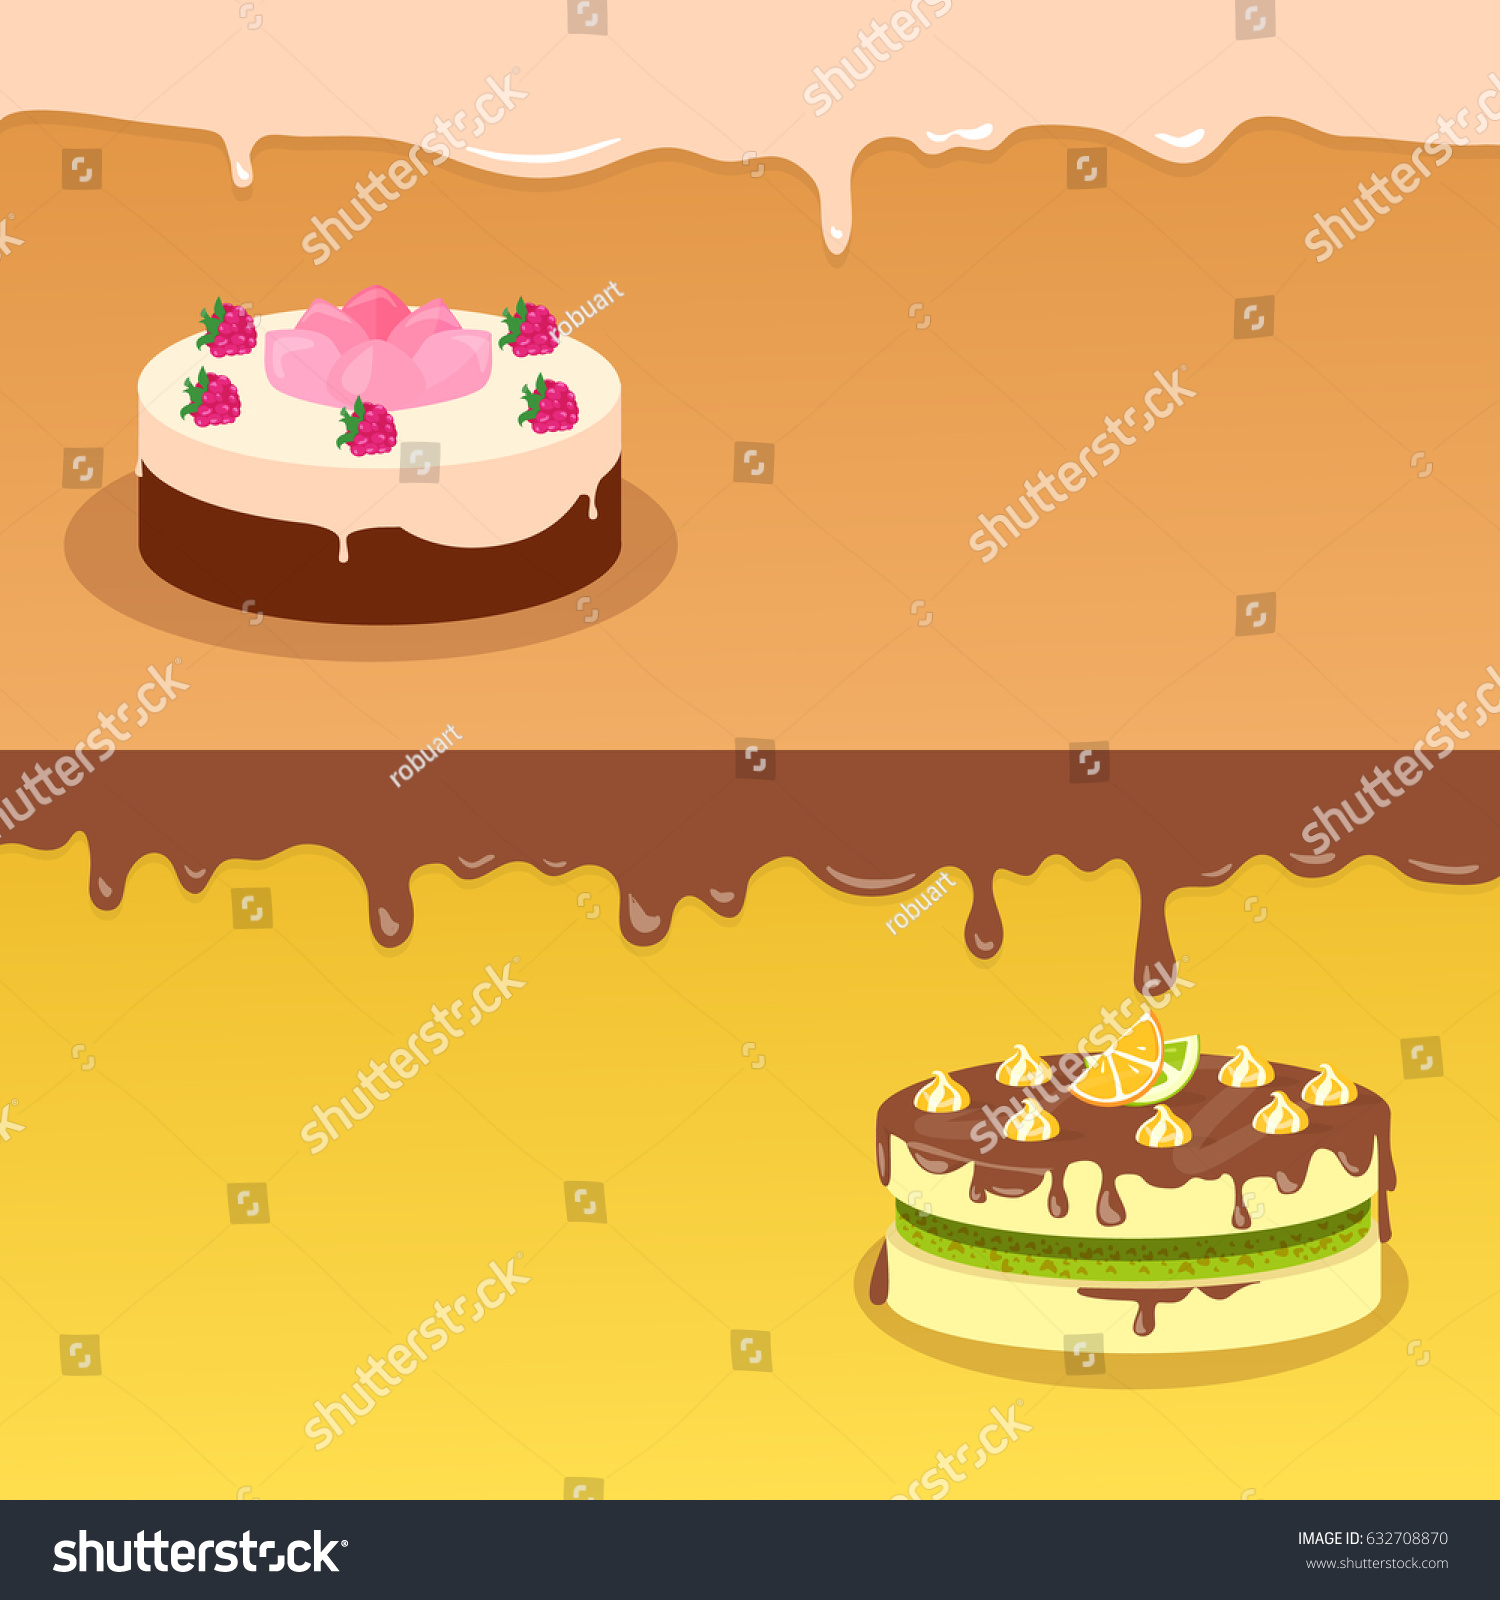 Delicious And Excellent Cake Banners Fruit Cakes Covered Glaze Chocolate Cream Flat Illustration